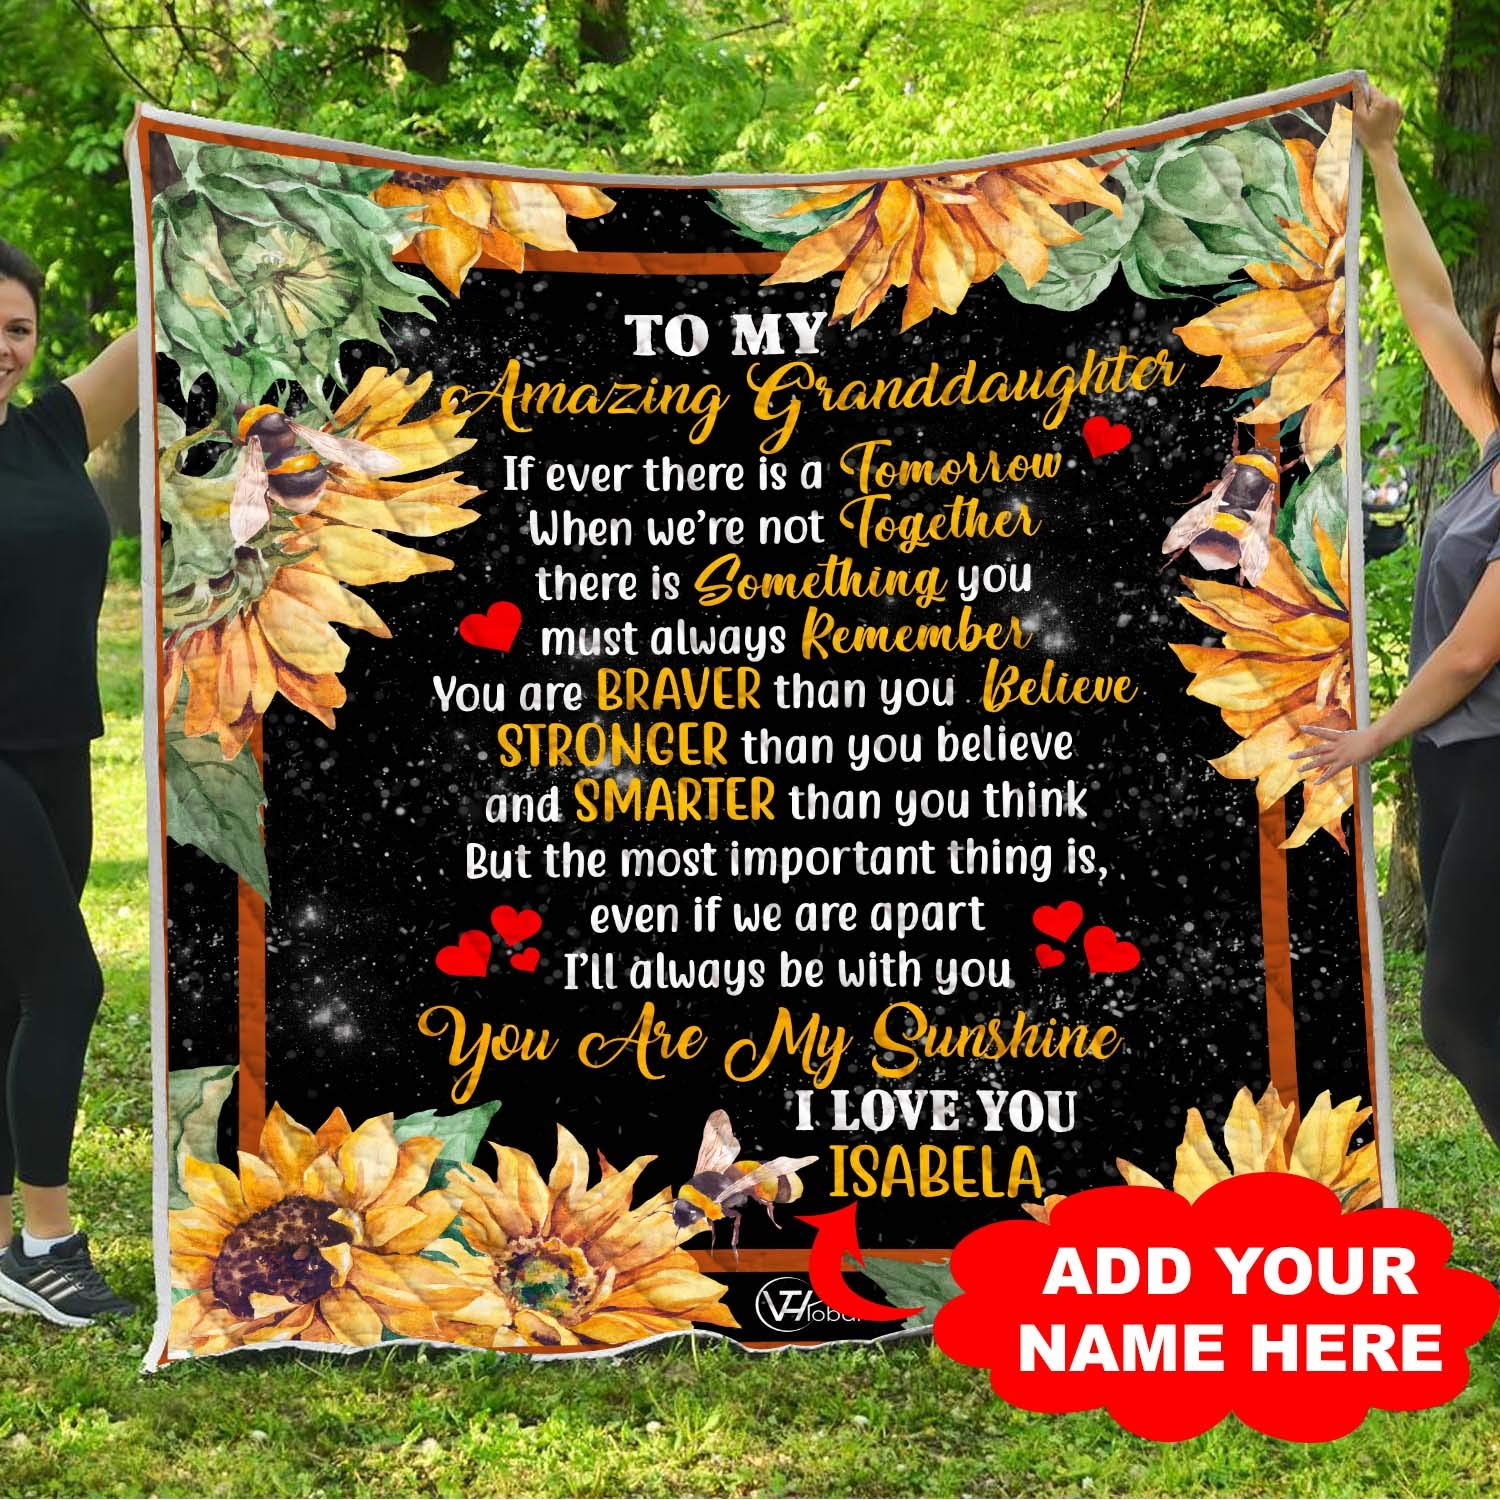 Personalized Name To My Granddaughter You are My Sunshine Sunflower Quilt Throw Blanket Xmas Birthday Little Girl Never Forget I Love You Baptism Keepsake Presents from Grandmother Grandma Nana